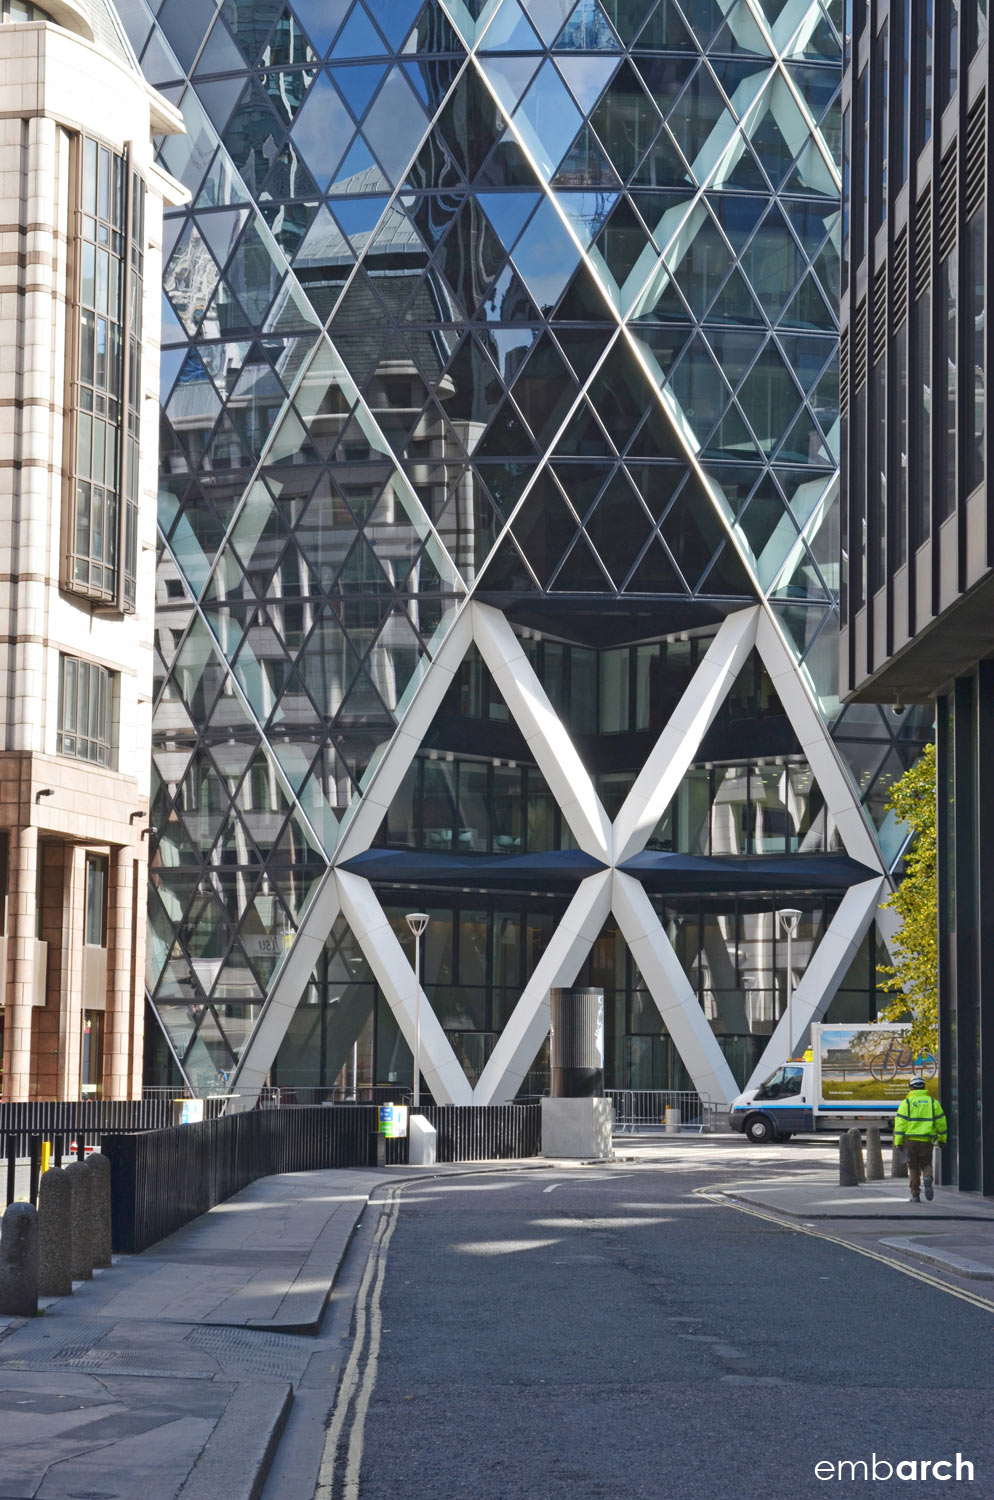 30 St. Mary's Axe - exterior